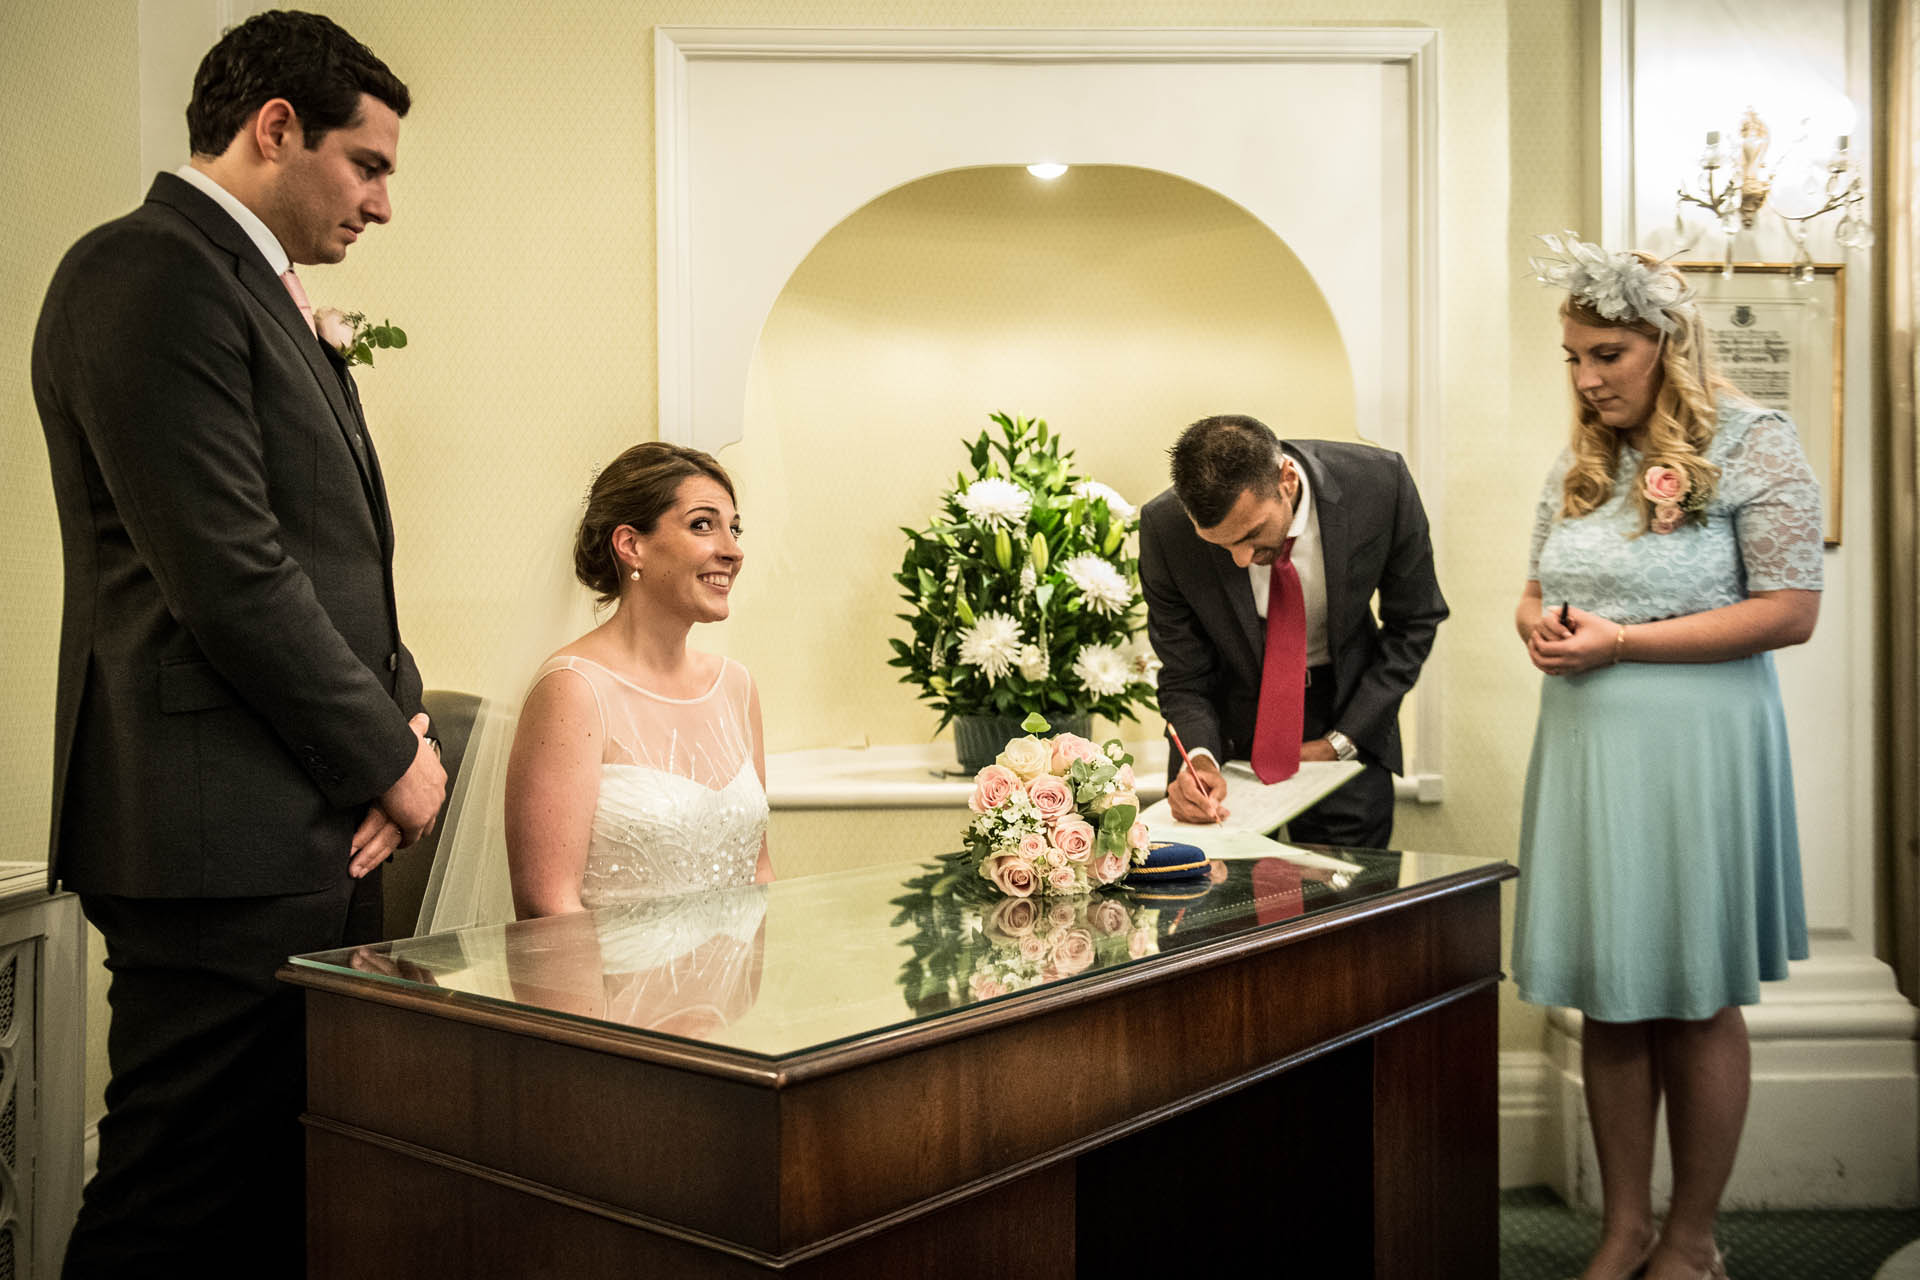 The Rossetti Room - Chelsea Old Town Hall Elopement Photos | The bride sits and waits excitedly at a desk